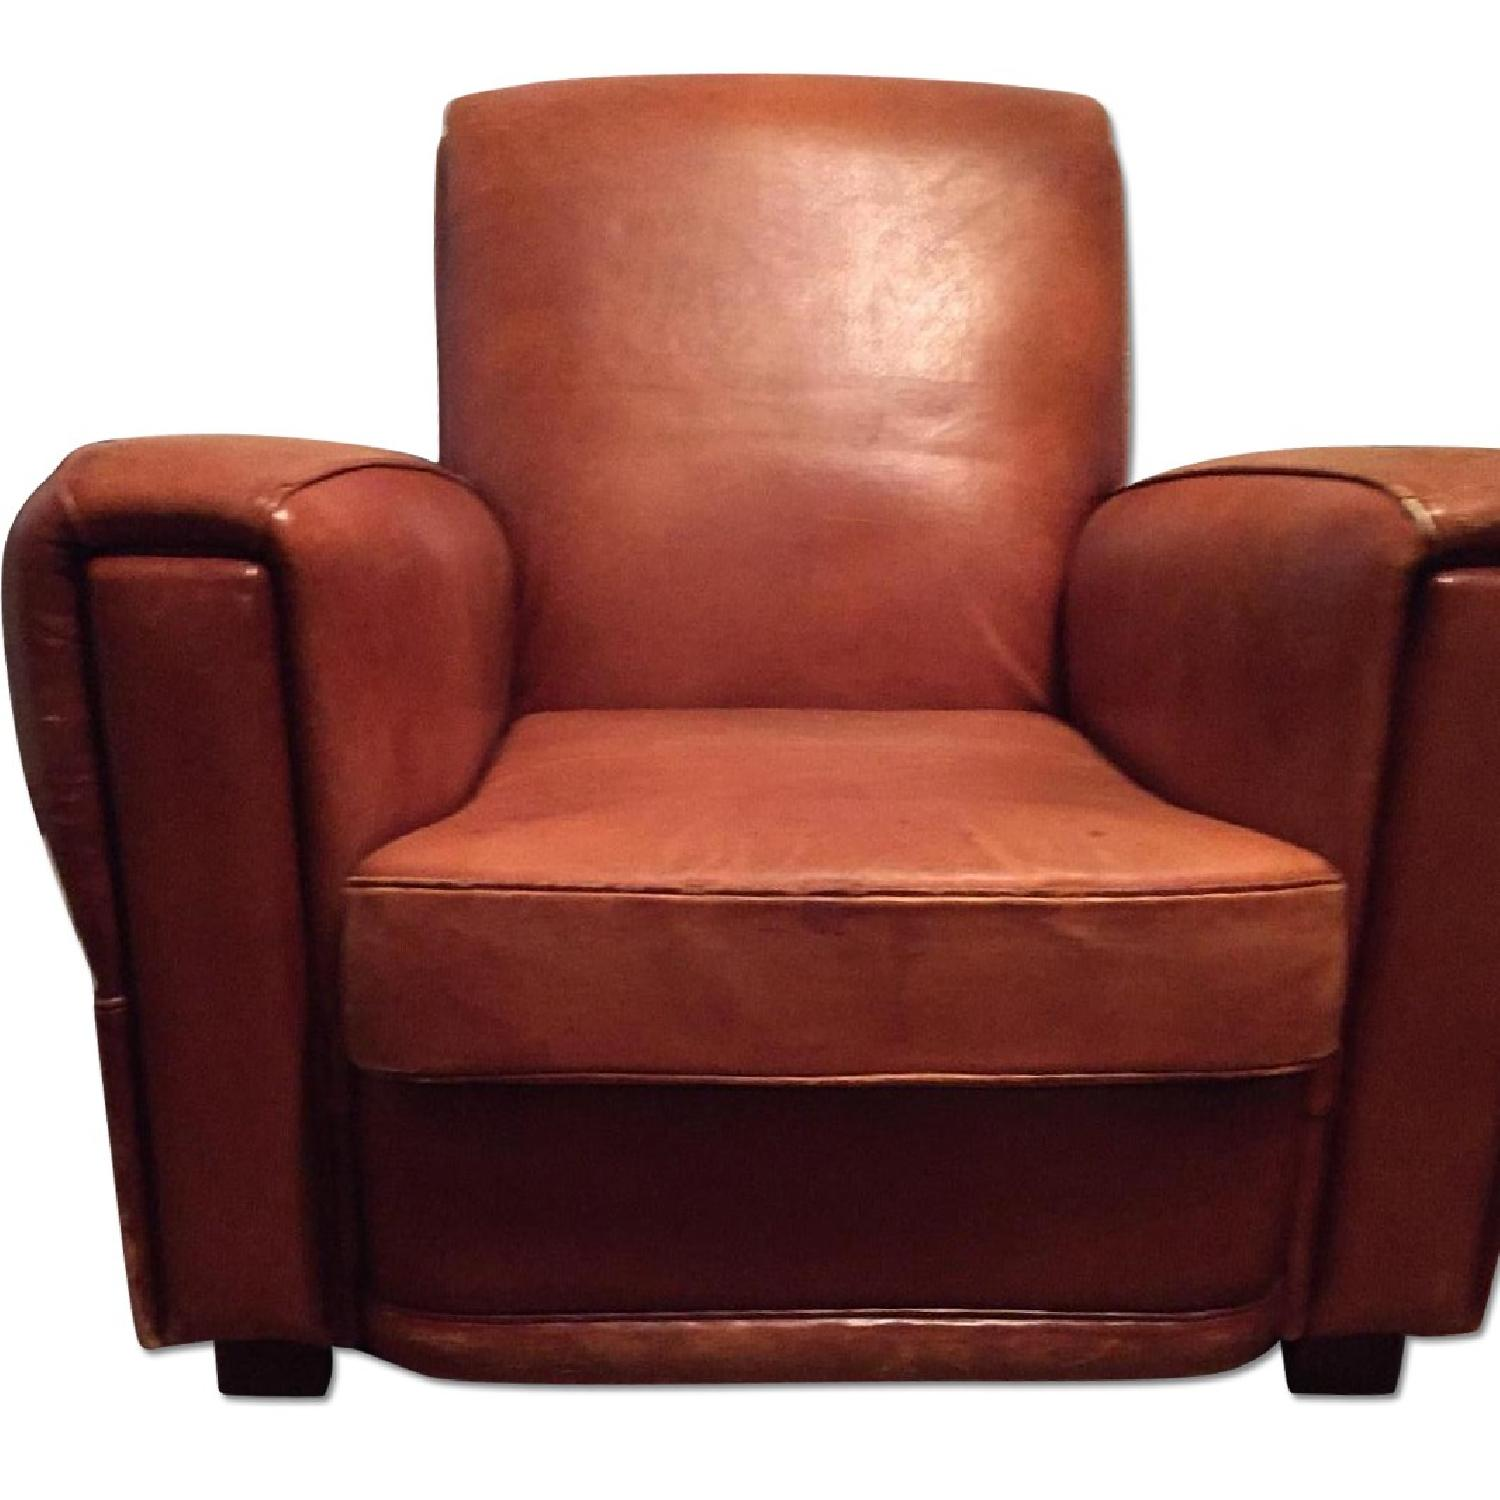 Portico Leather Club Chair - image-0